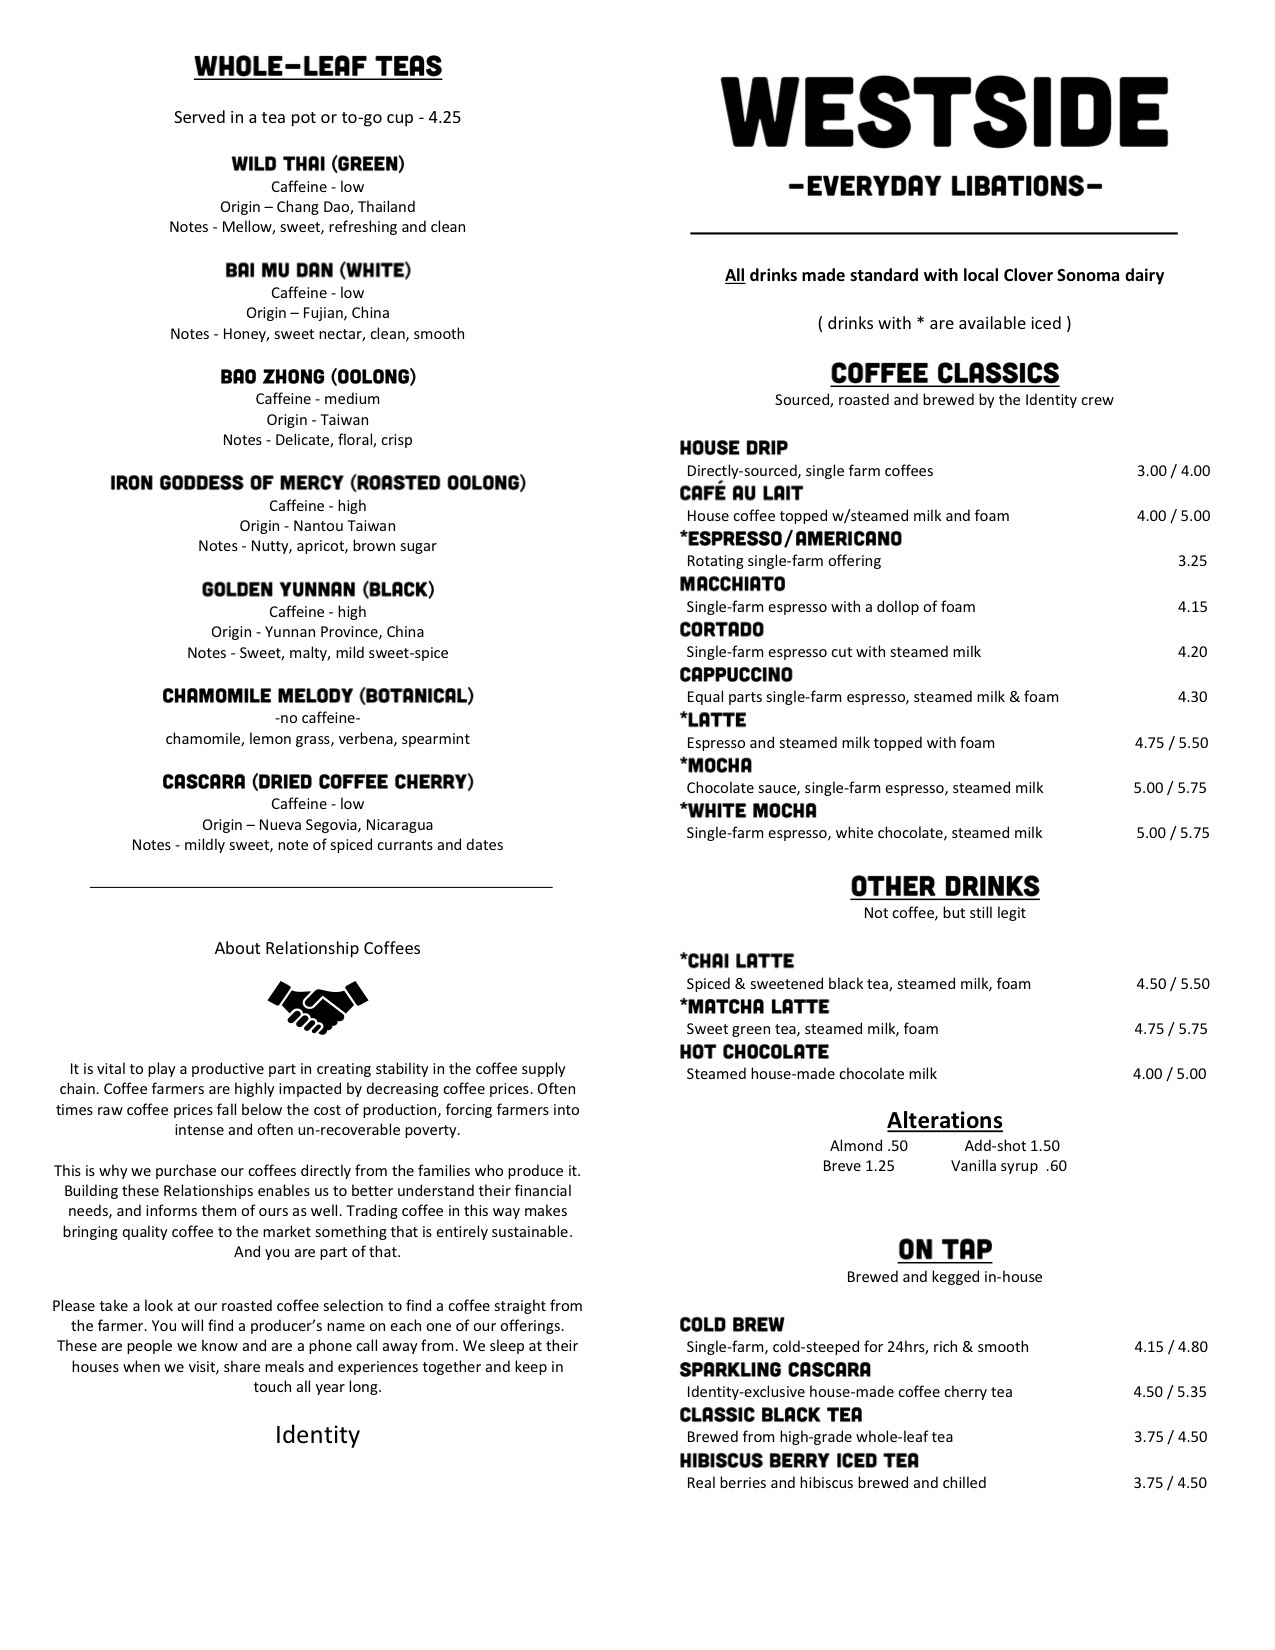 Westside menu p1 - 1.jpg